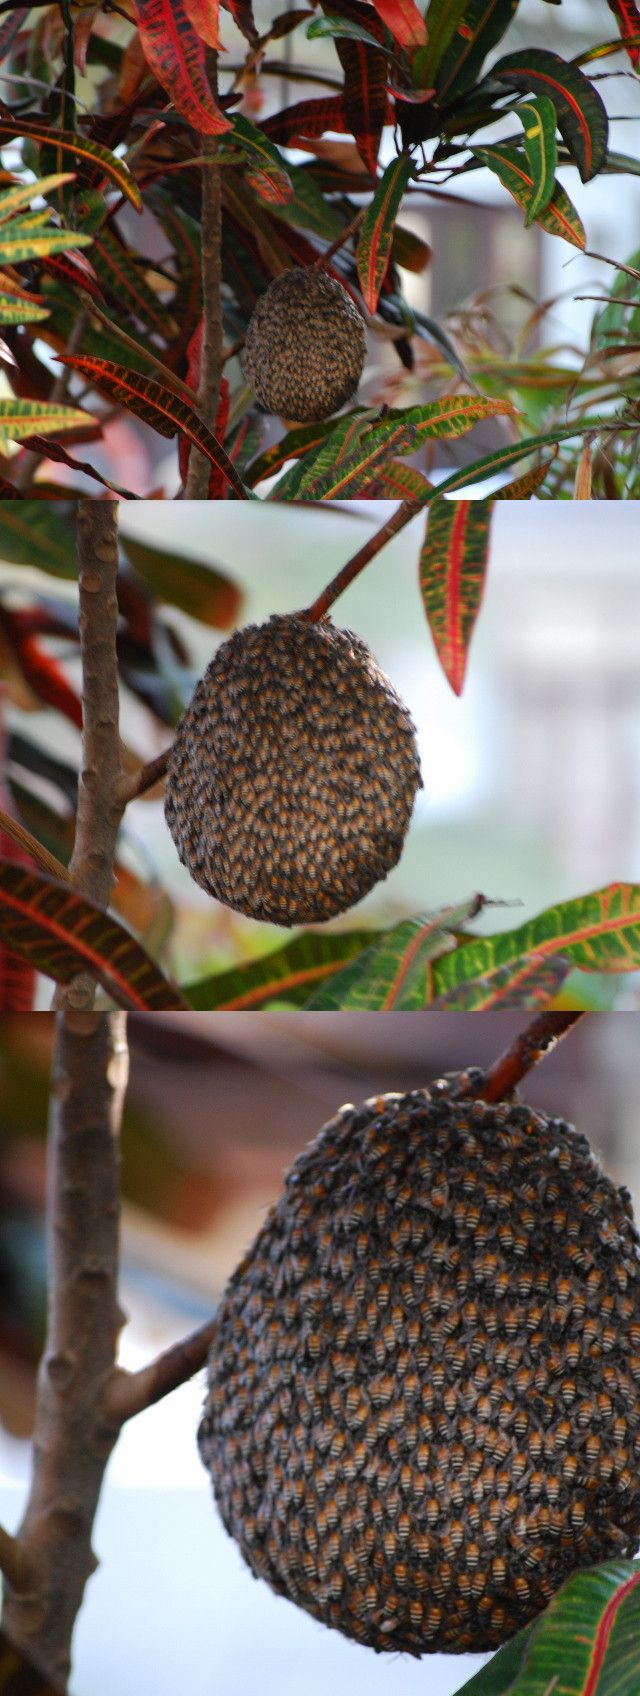 On holiday in Vietnam when I saw an exotic fruit hanging in a tree, moved in for a closeup and OMFG RUN!!!!